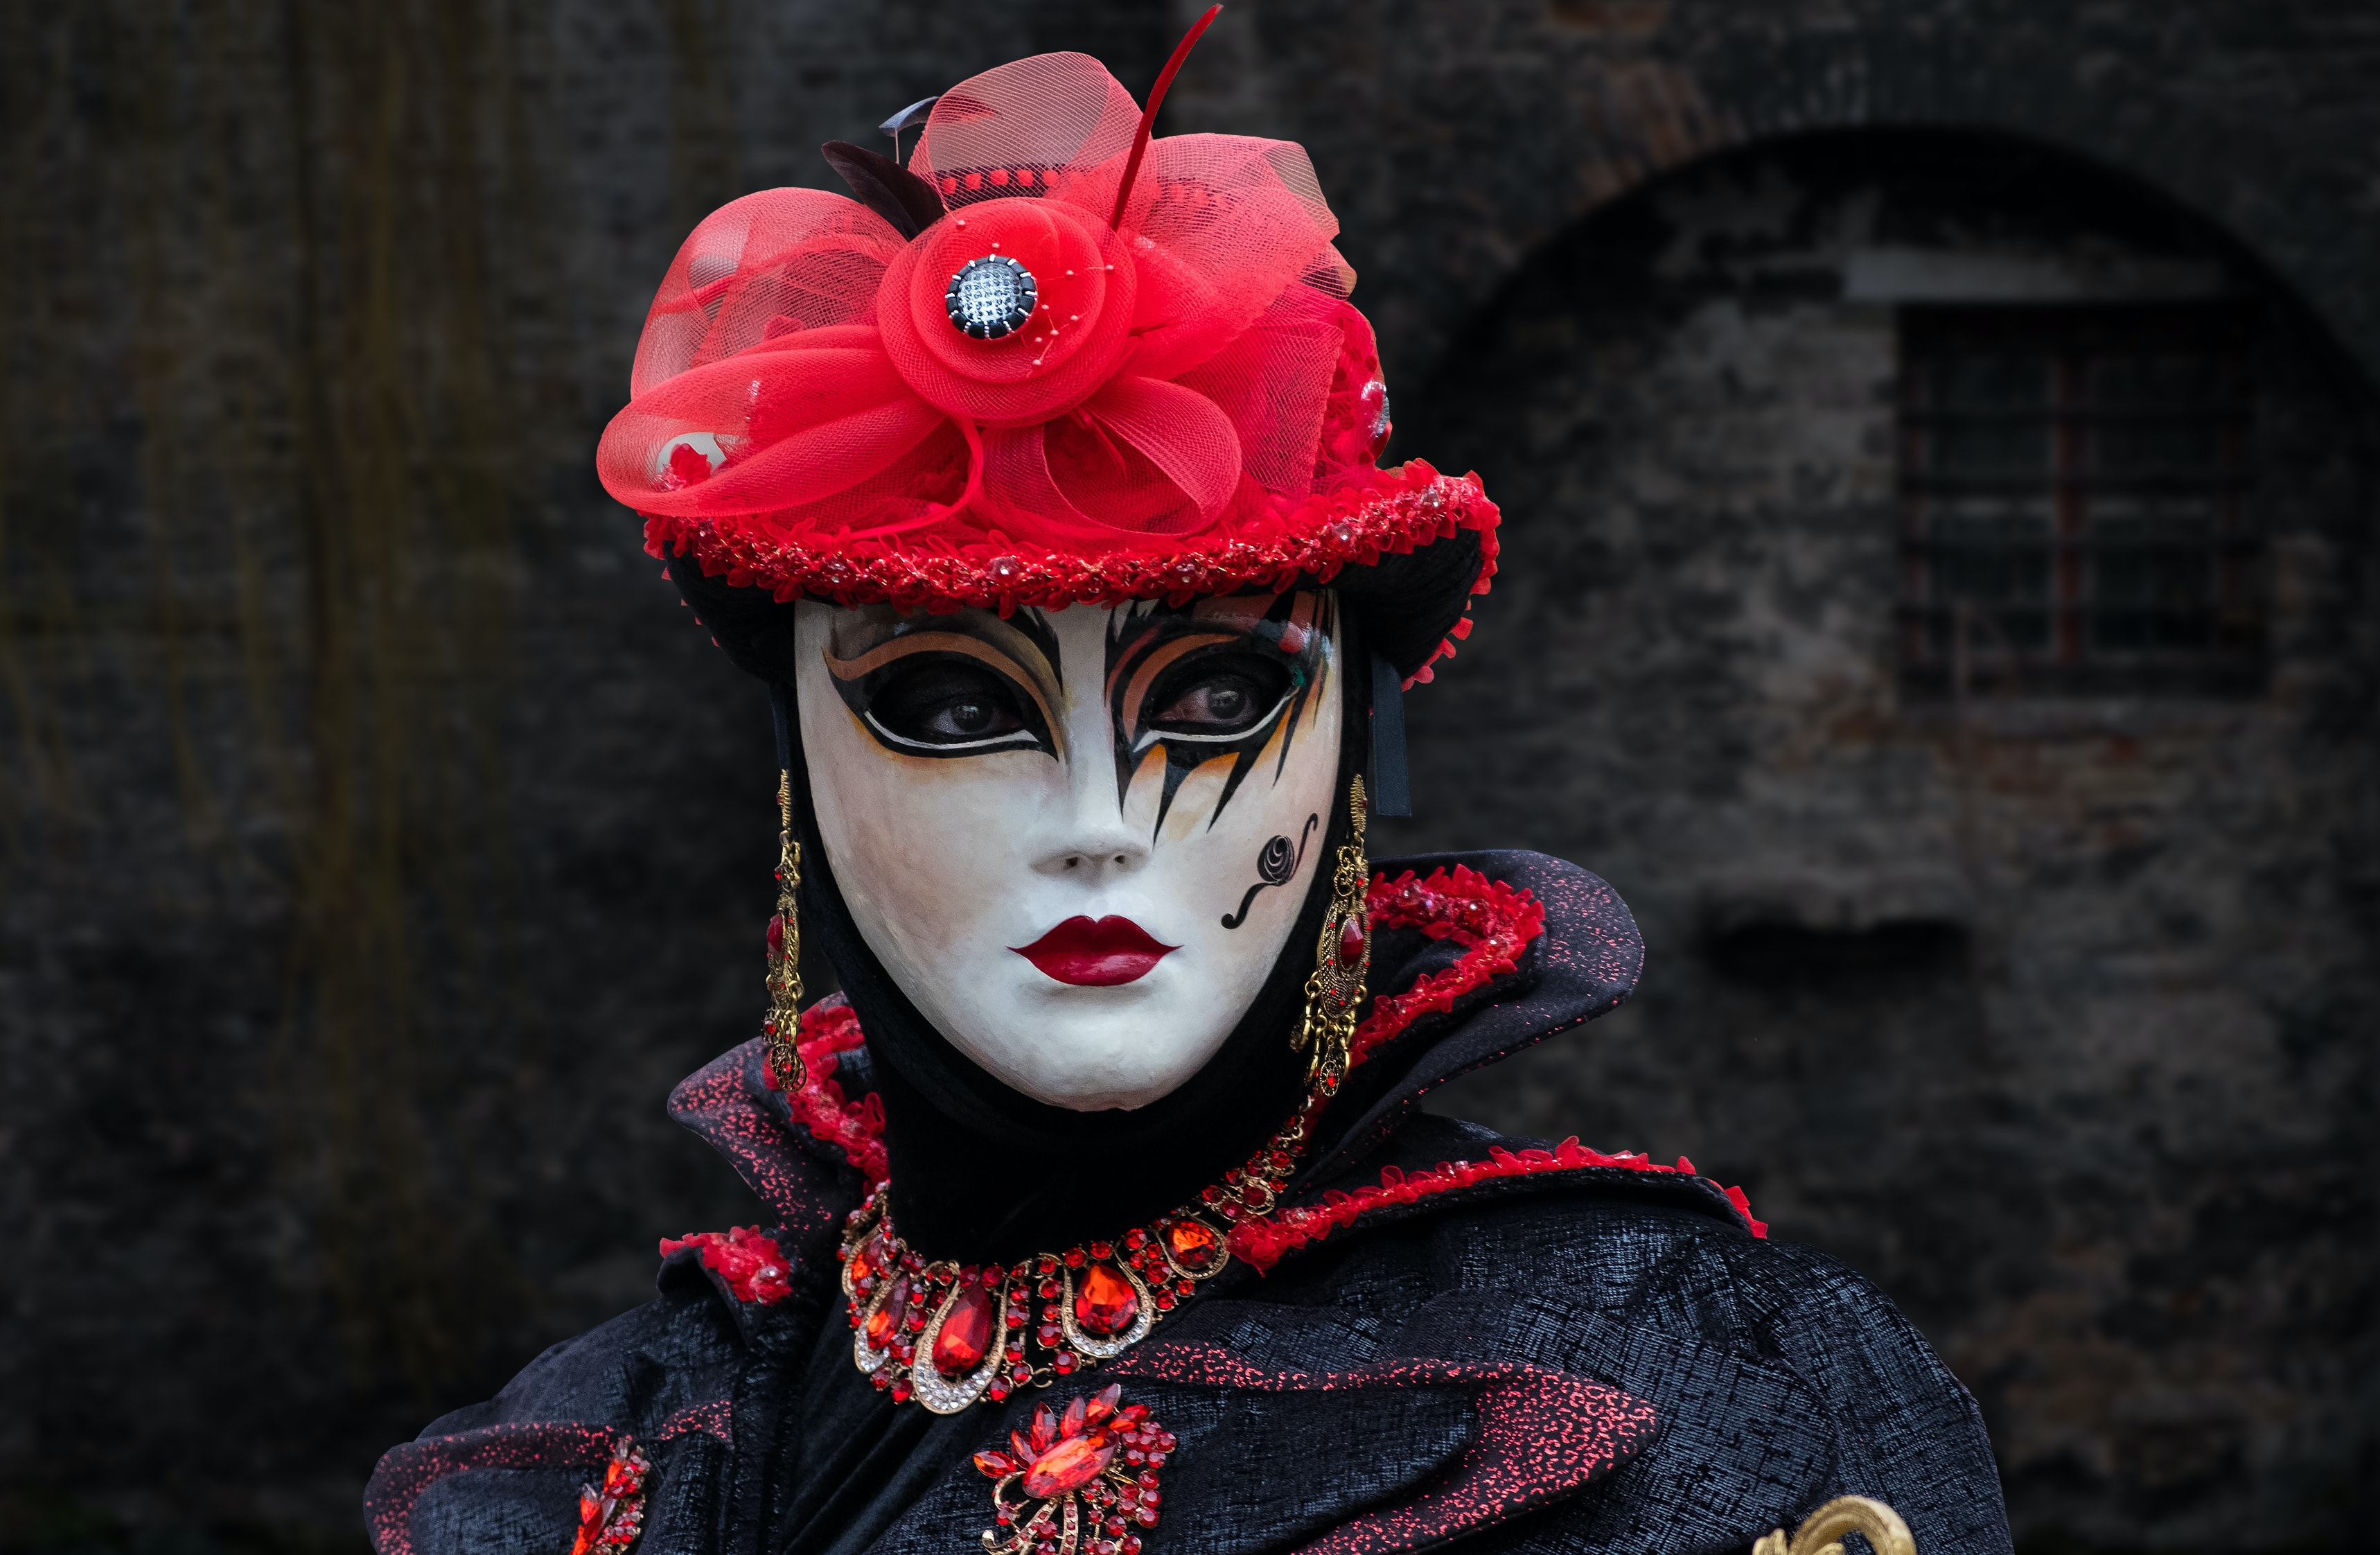 shallow focus photography of person in masquerade mask